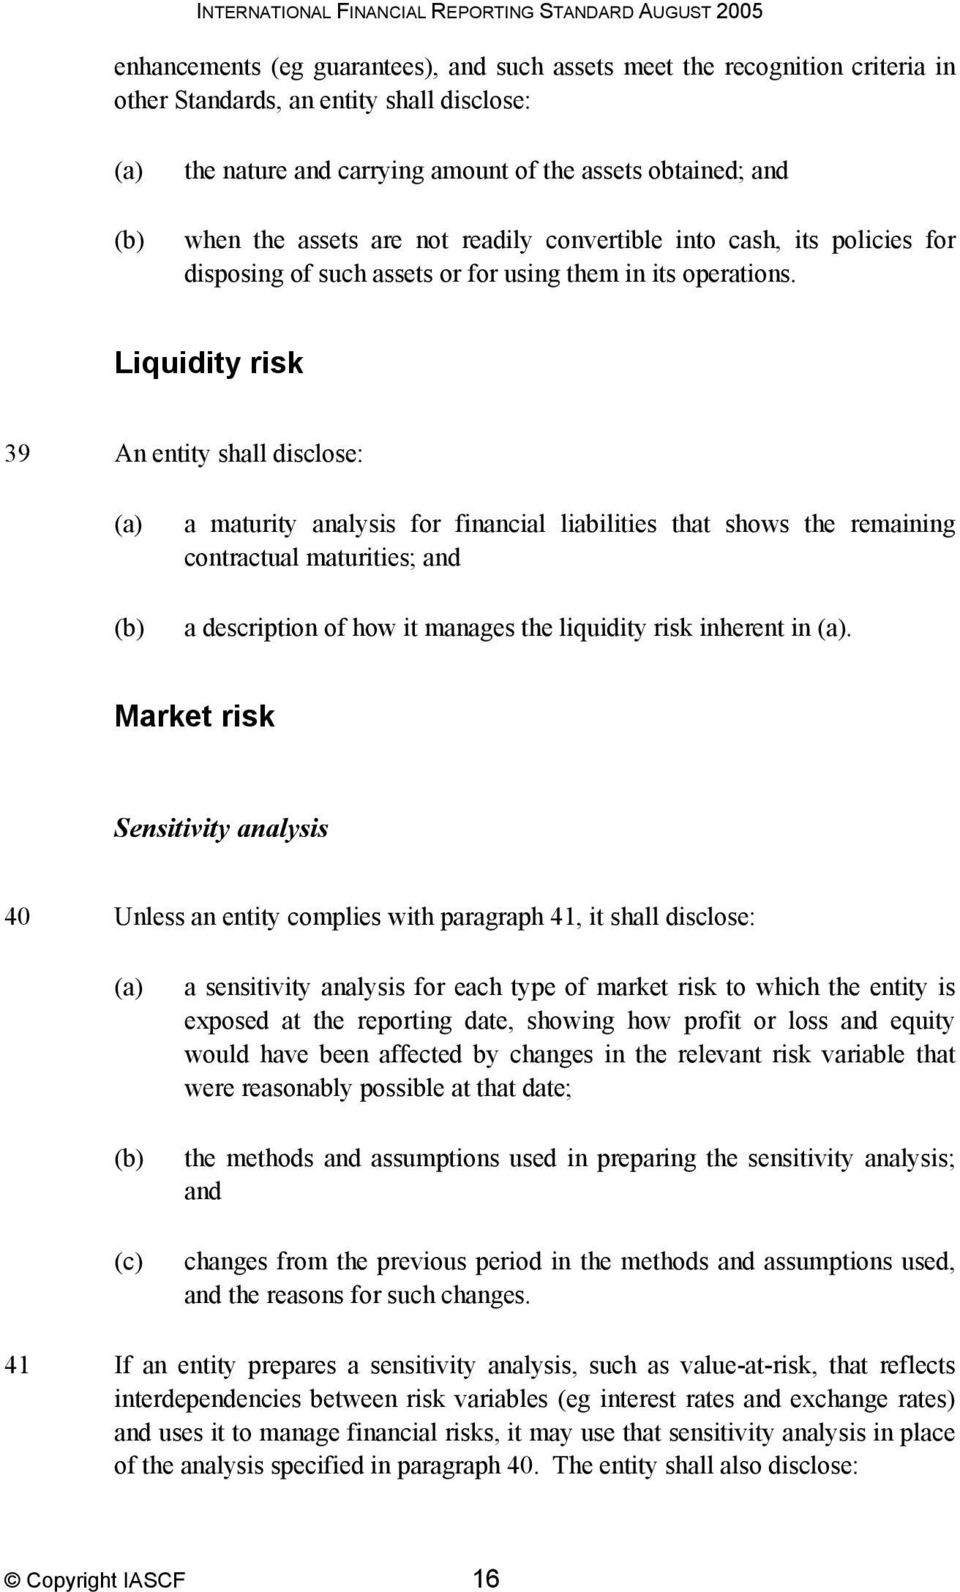 Liquidity risk 39 An entity shall disclose: a maturity analysis for financial liabilities that shows the remaining contractual maturities; and a description of how it manages the liquidity risk